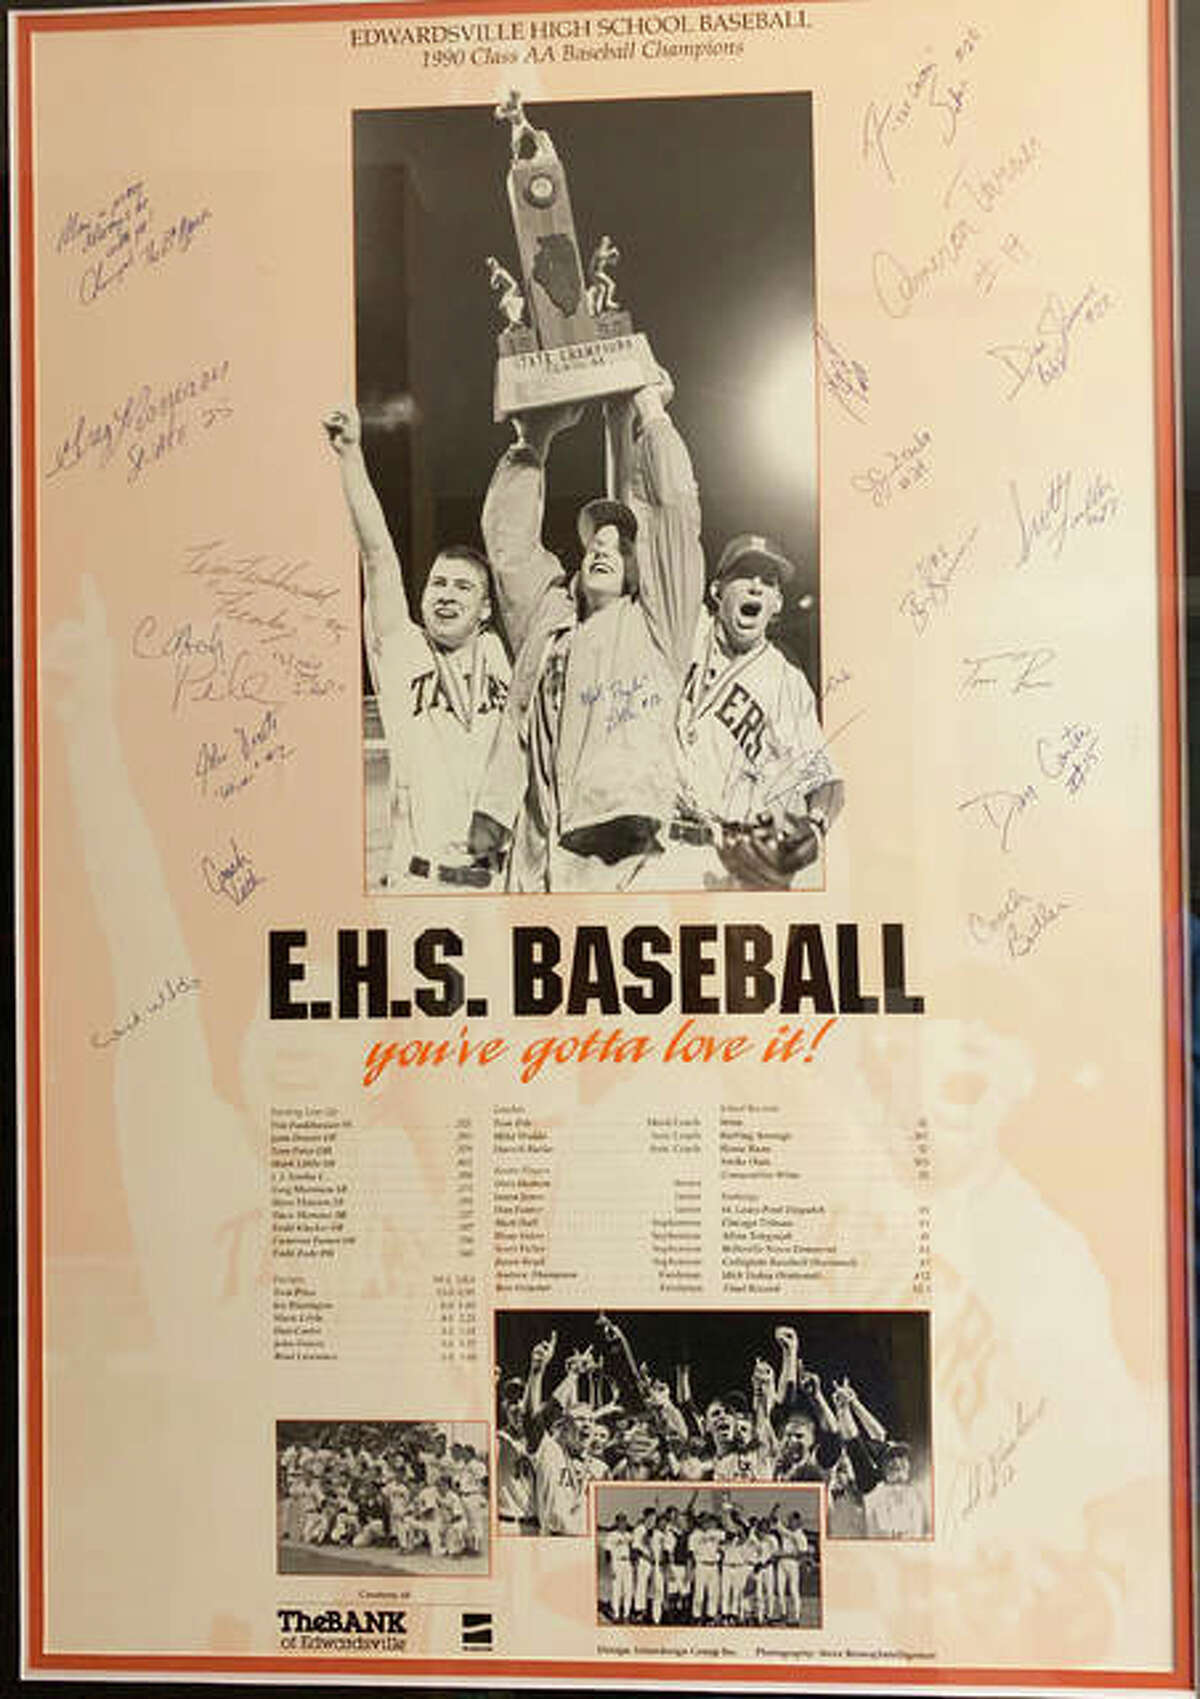 A poster of the 1990 state championship Edwardsville baseball team hangs in the house of Steve Flowers.